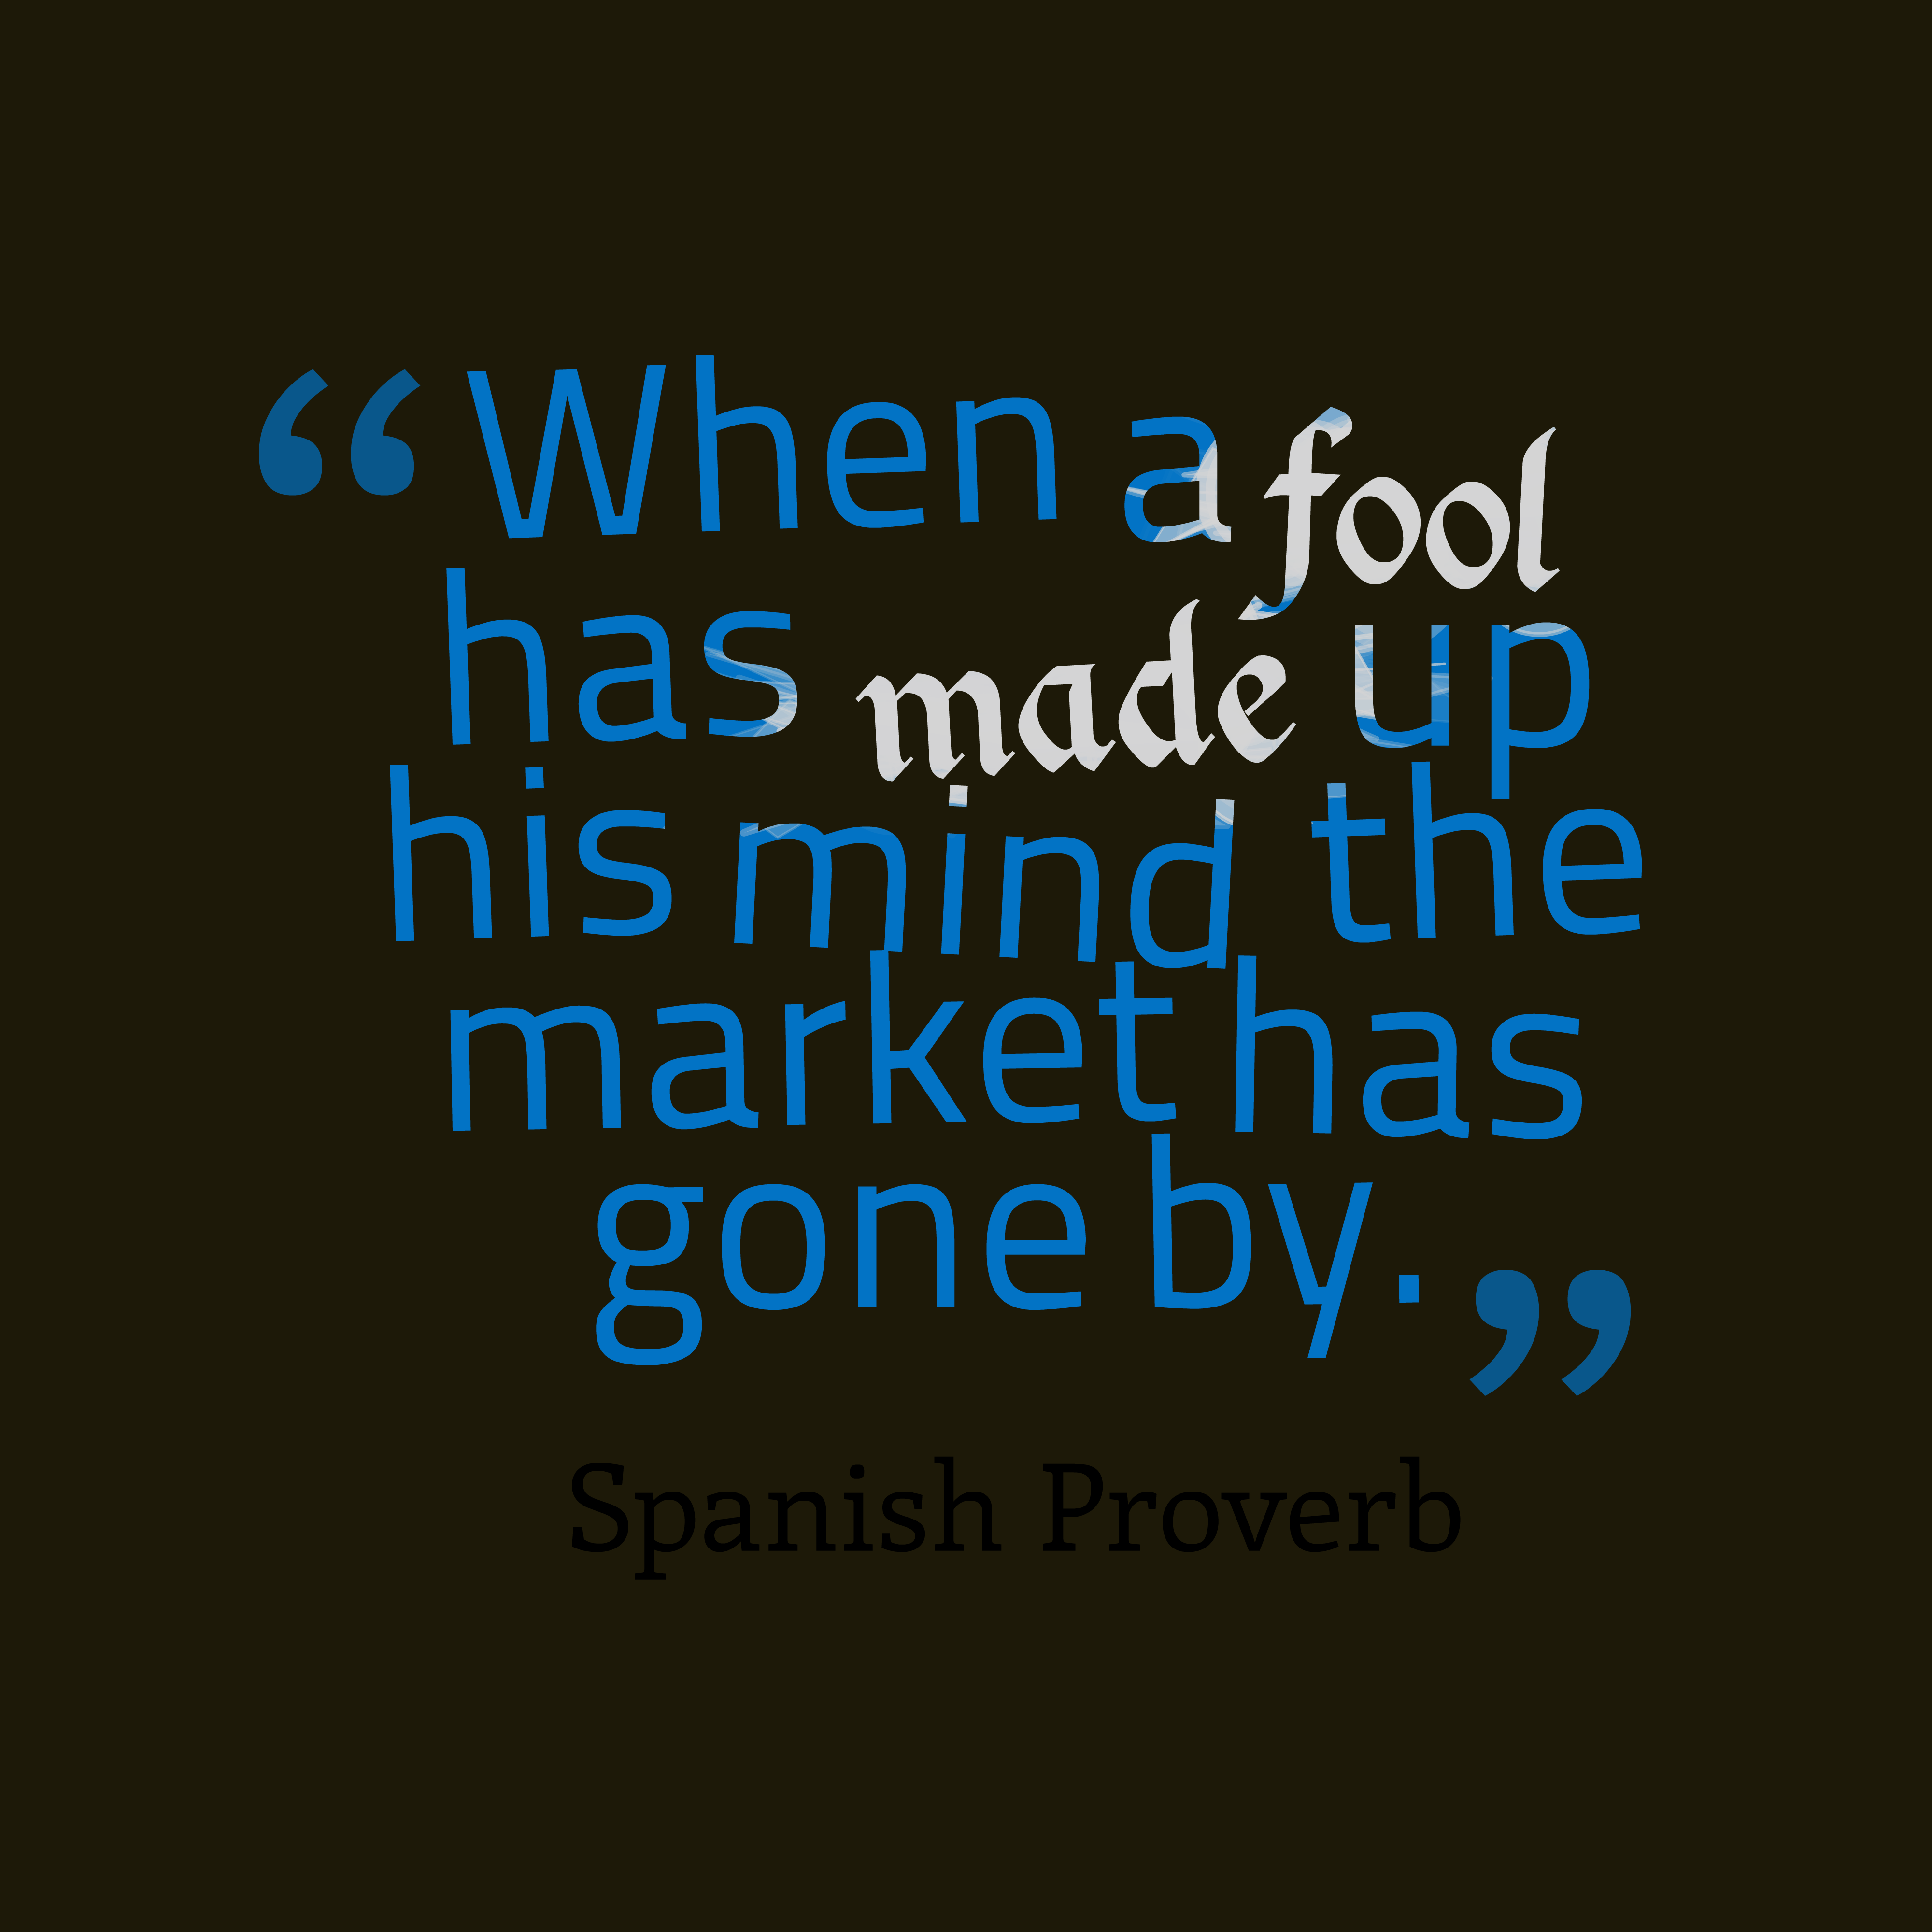 Quotes image of When a fool has made up his mind the market has gone by.